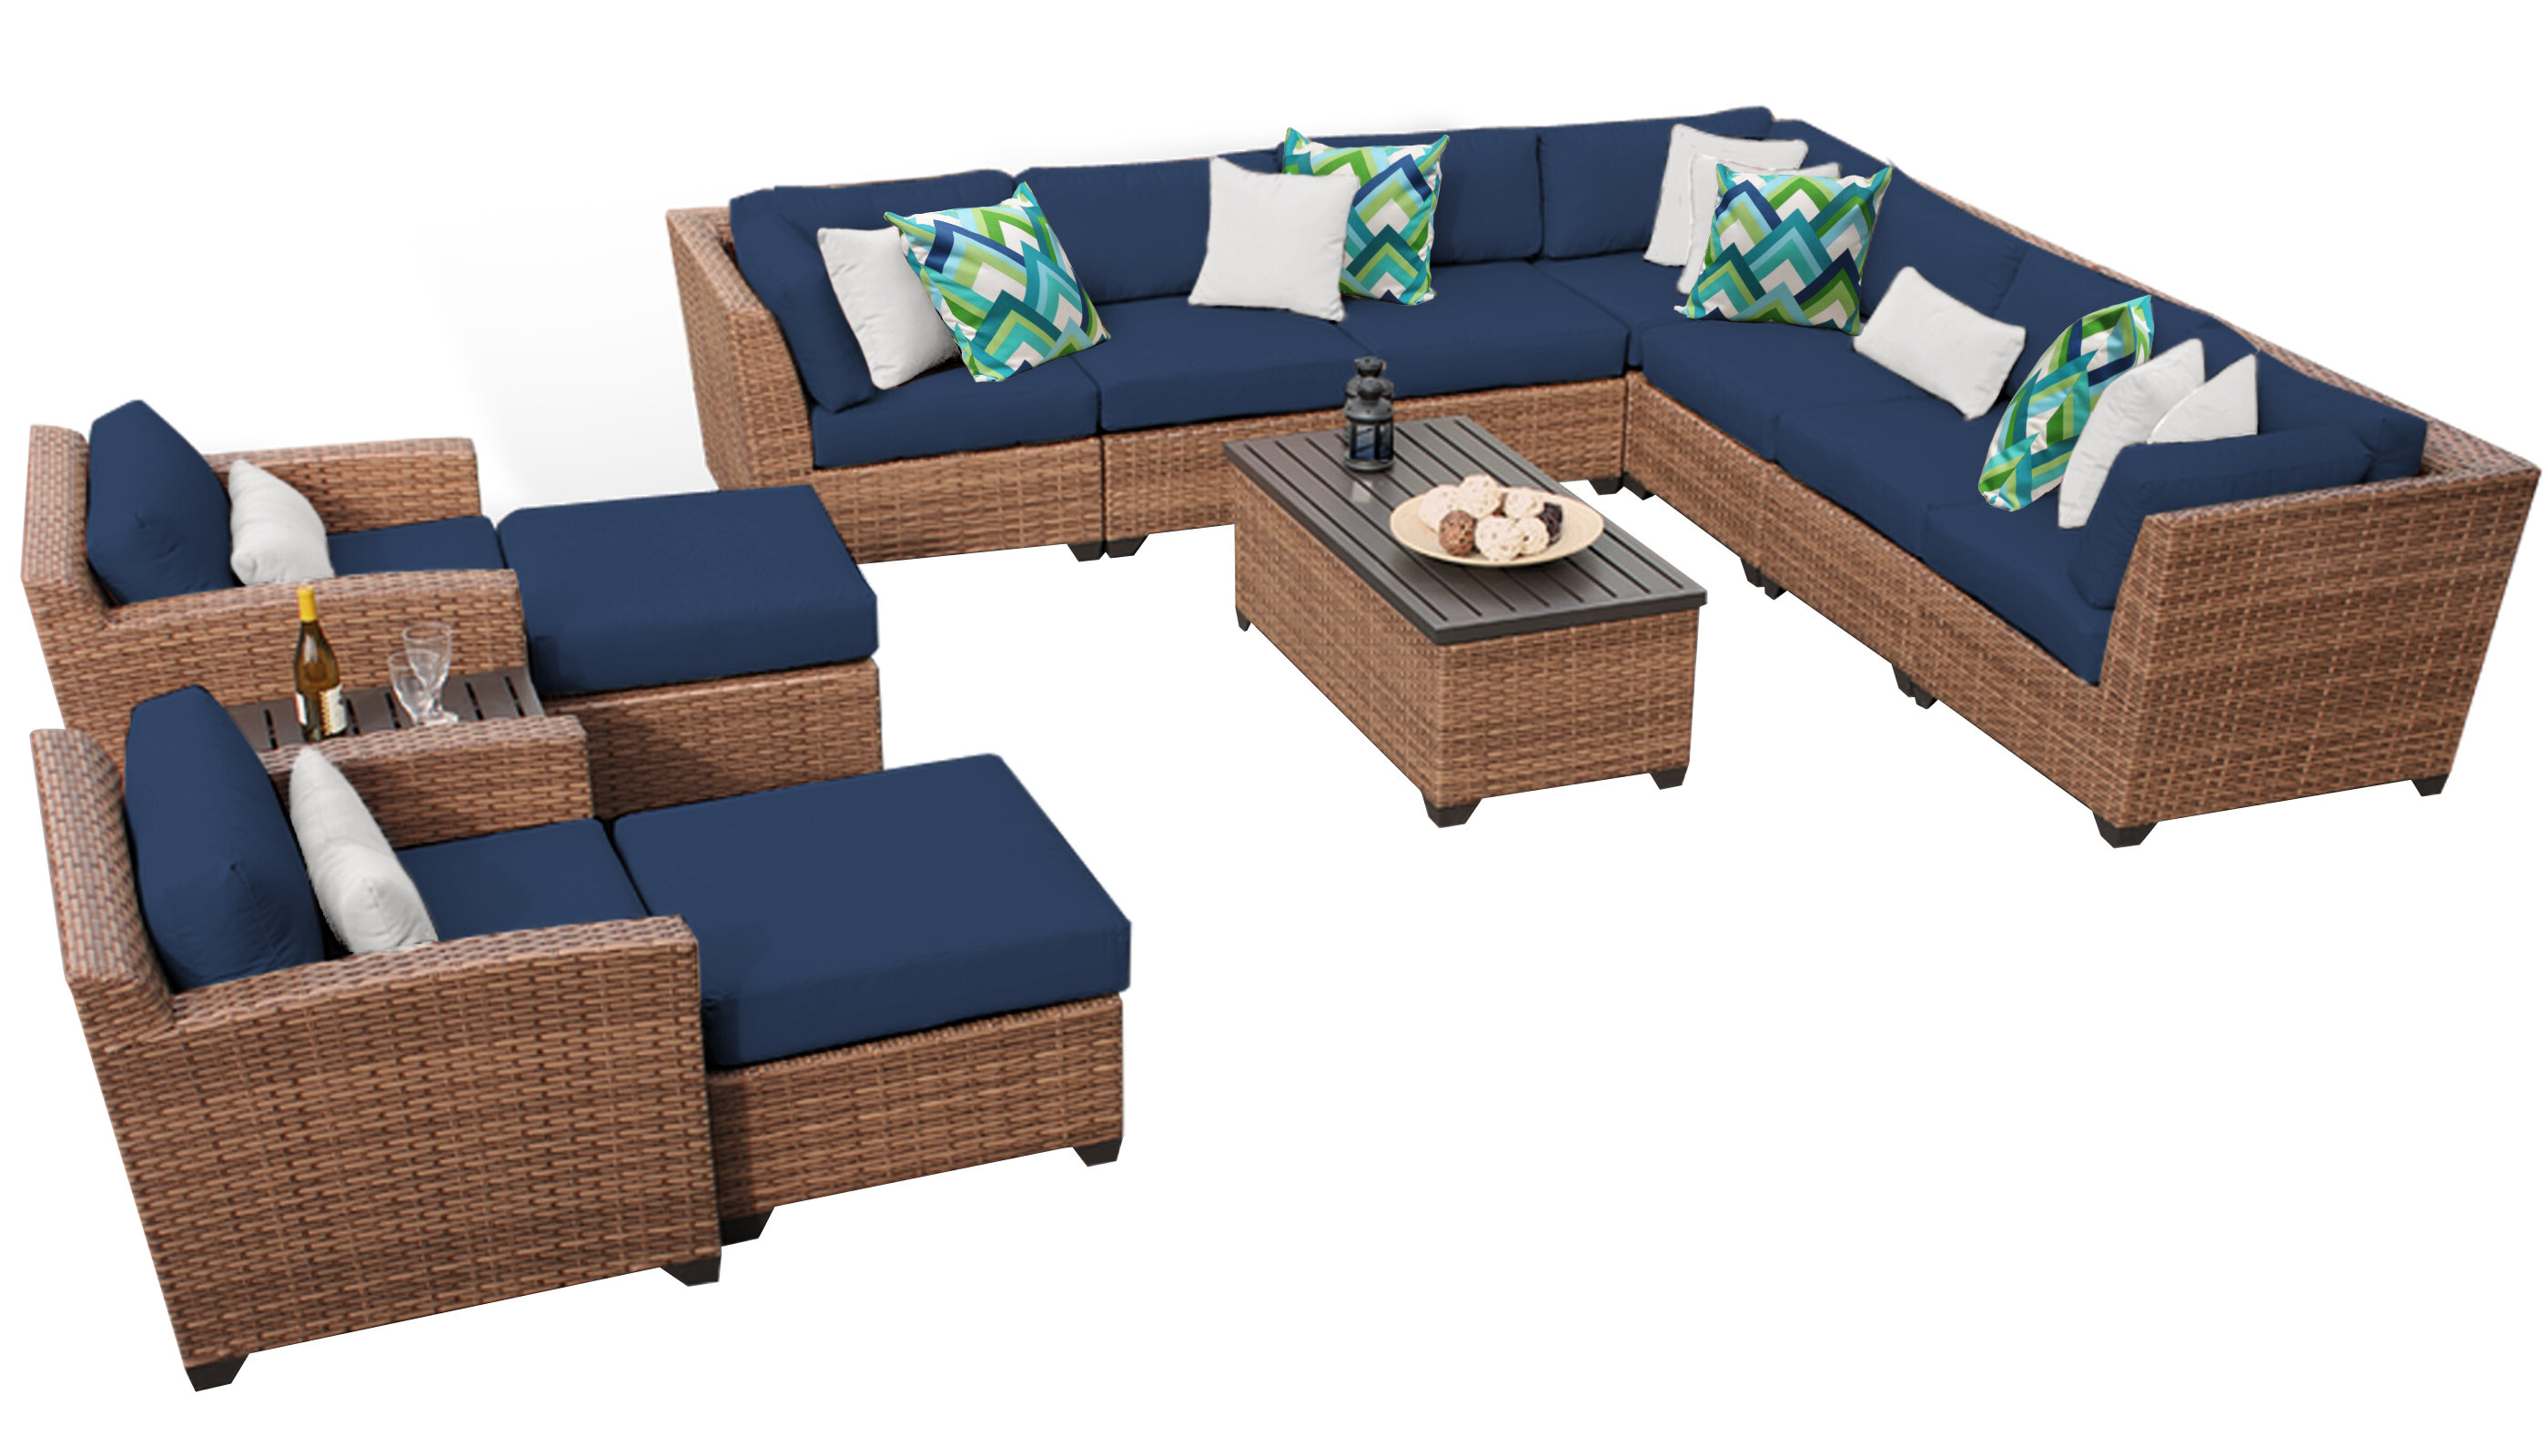 Outdoor 13 Piece Wicker Patio Sets With Cushions With Trendy Waterbury 13 Piece Rattan Sectional Seating Group With Cushions (View 21 of 25)